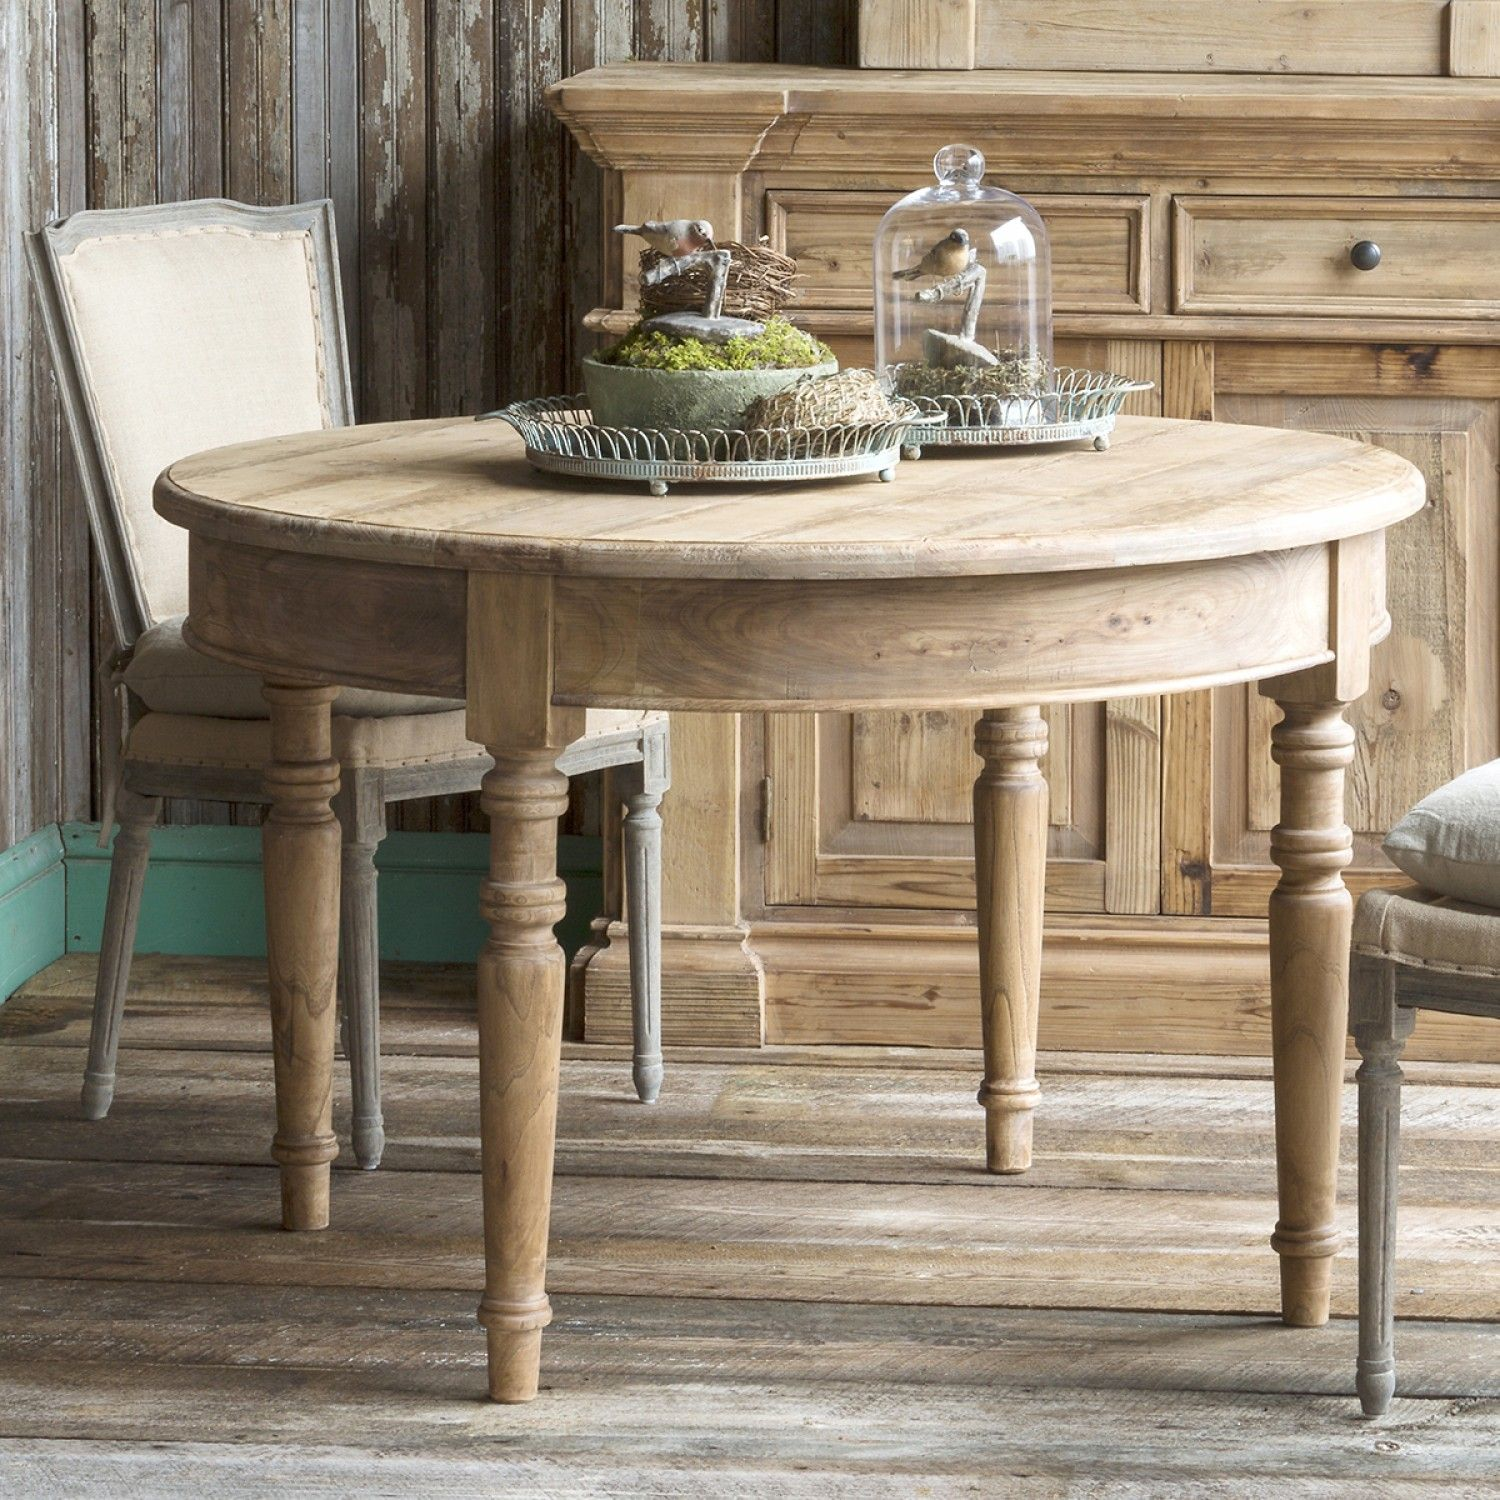 Rustic Round Dining Table ParkHill thebellacottage